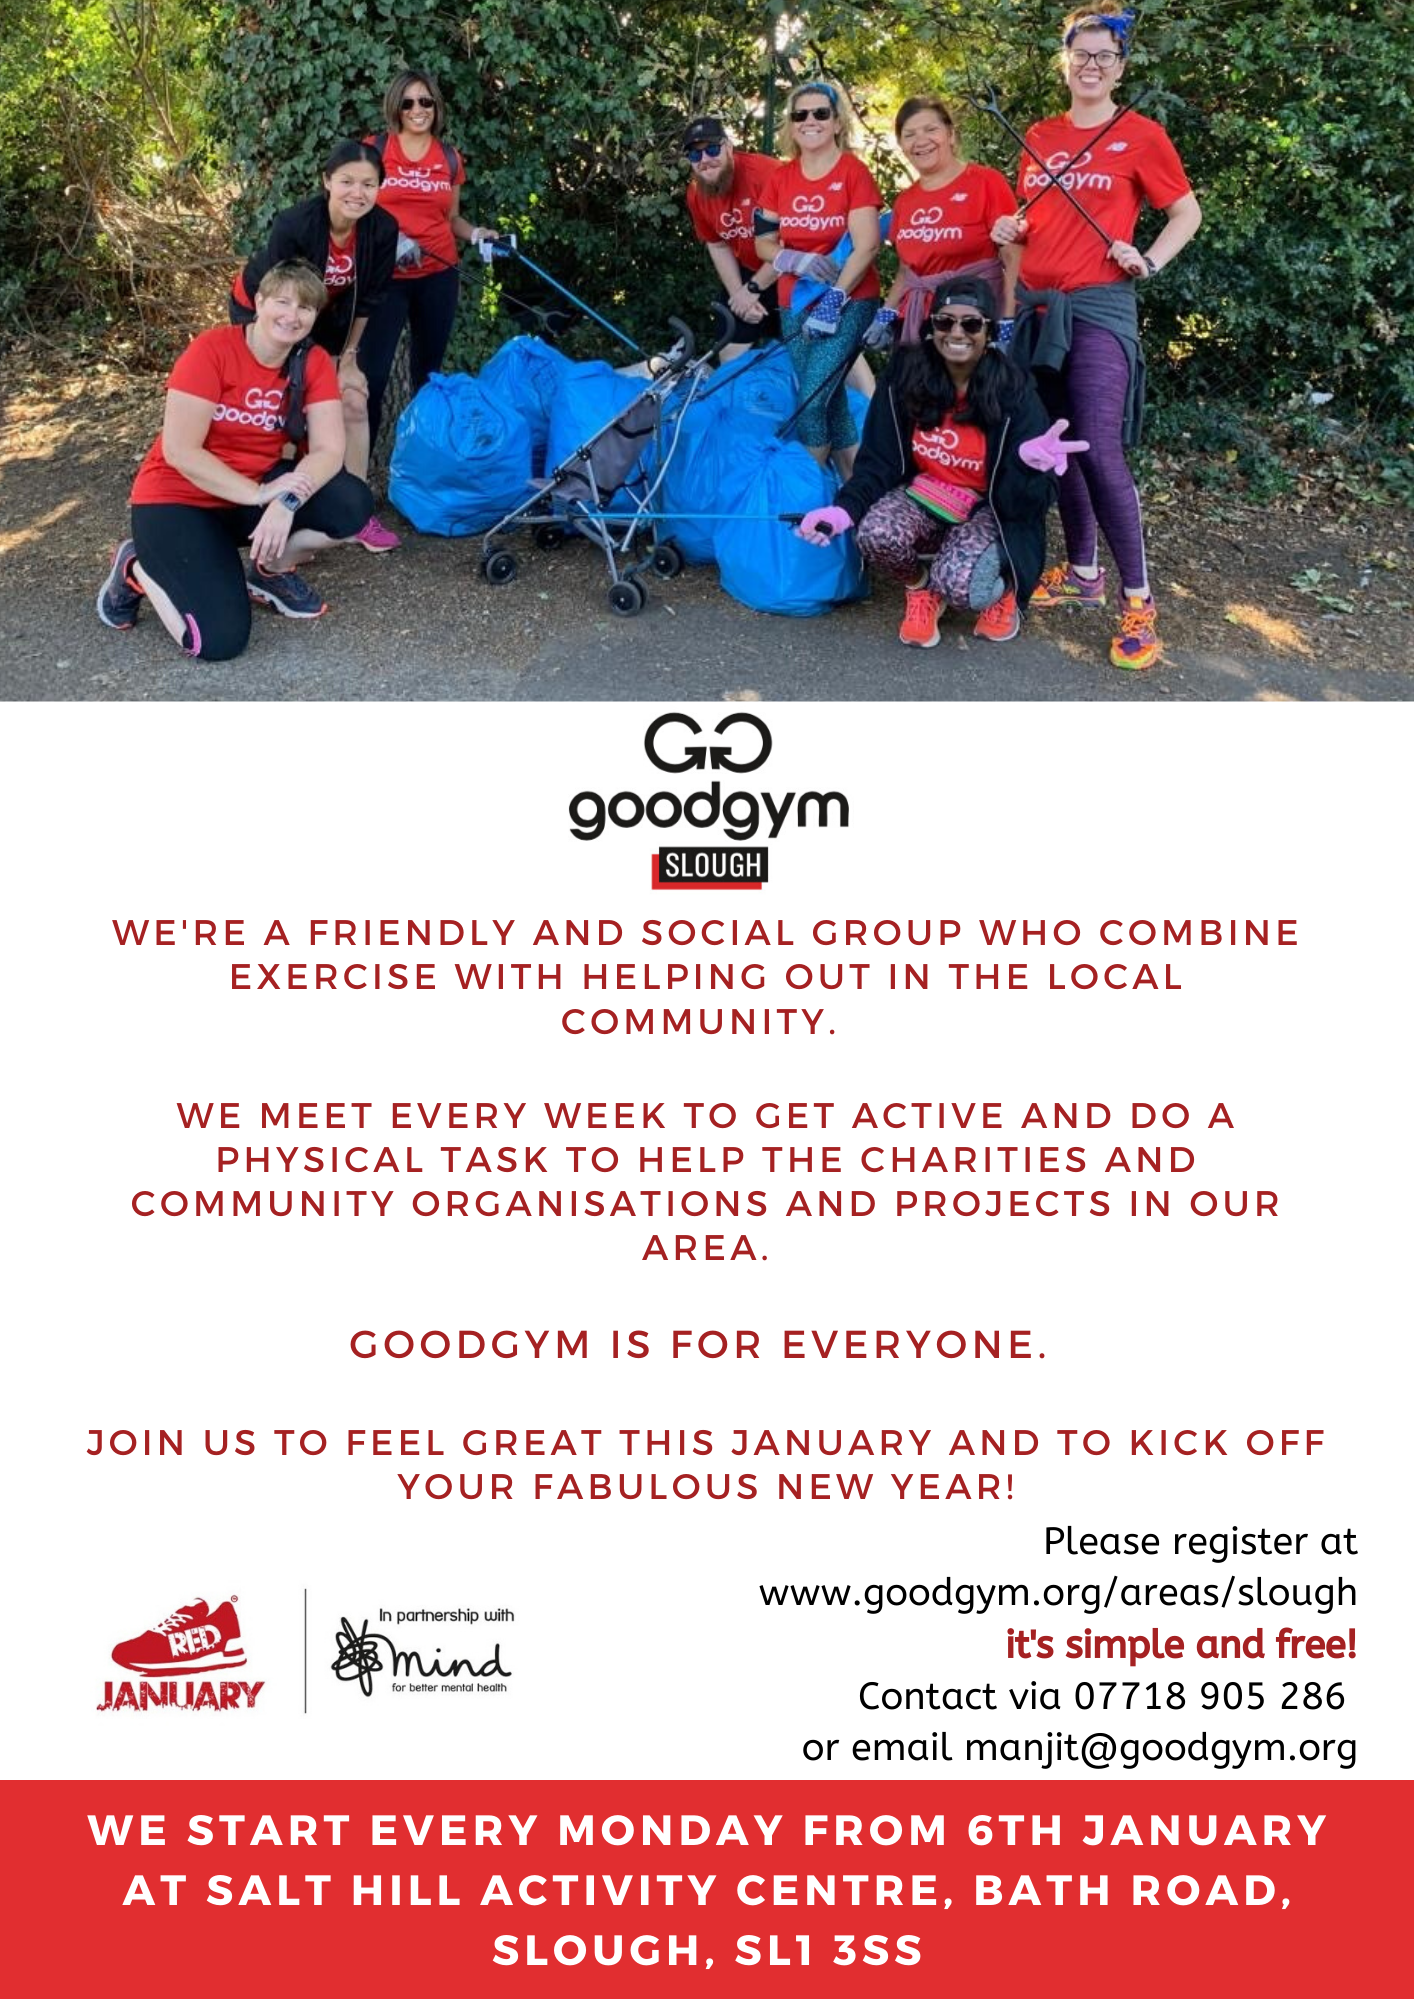 Image: GoodGym Slough Run / Walk Sessions